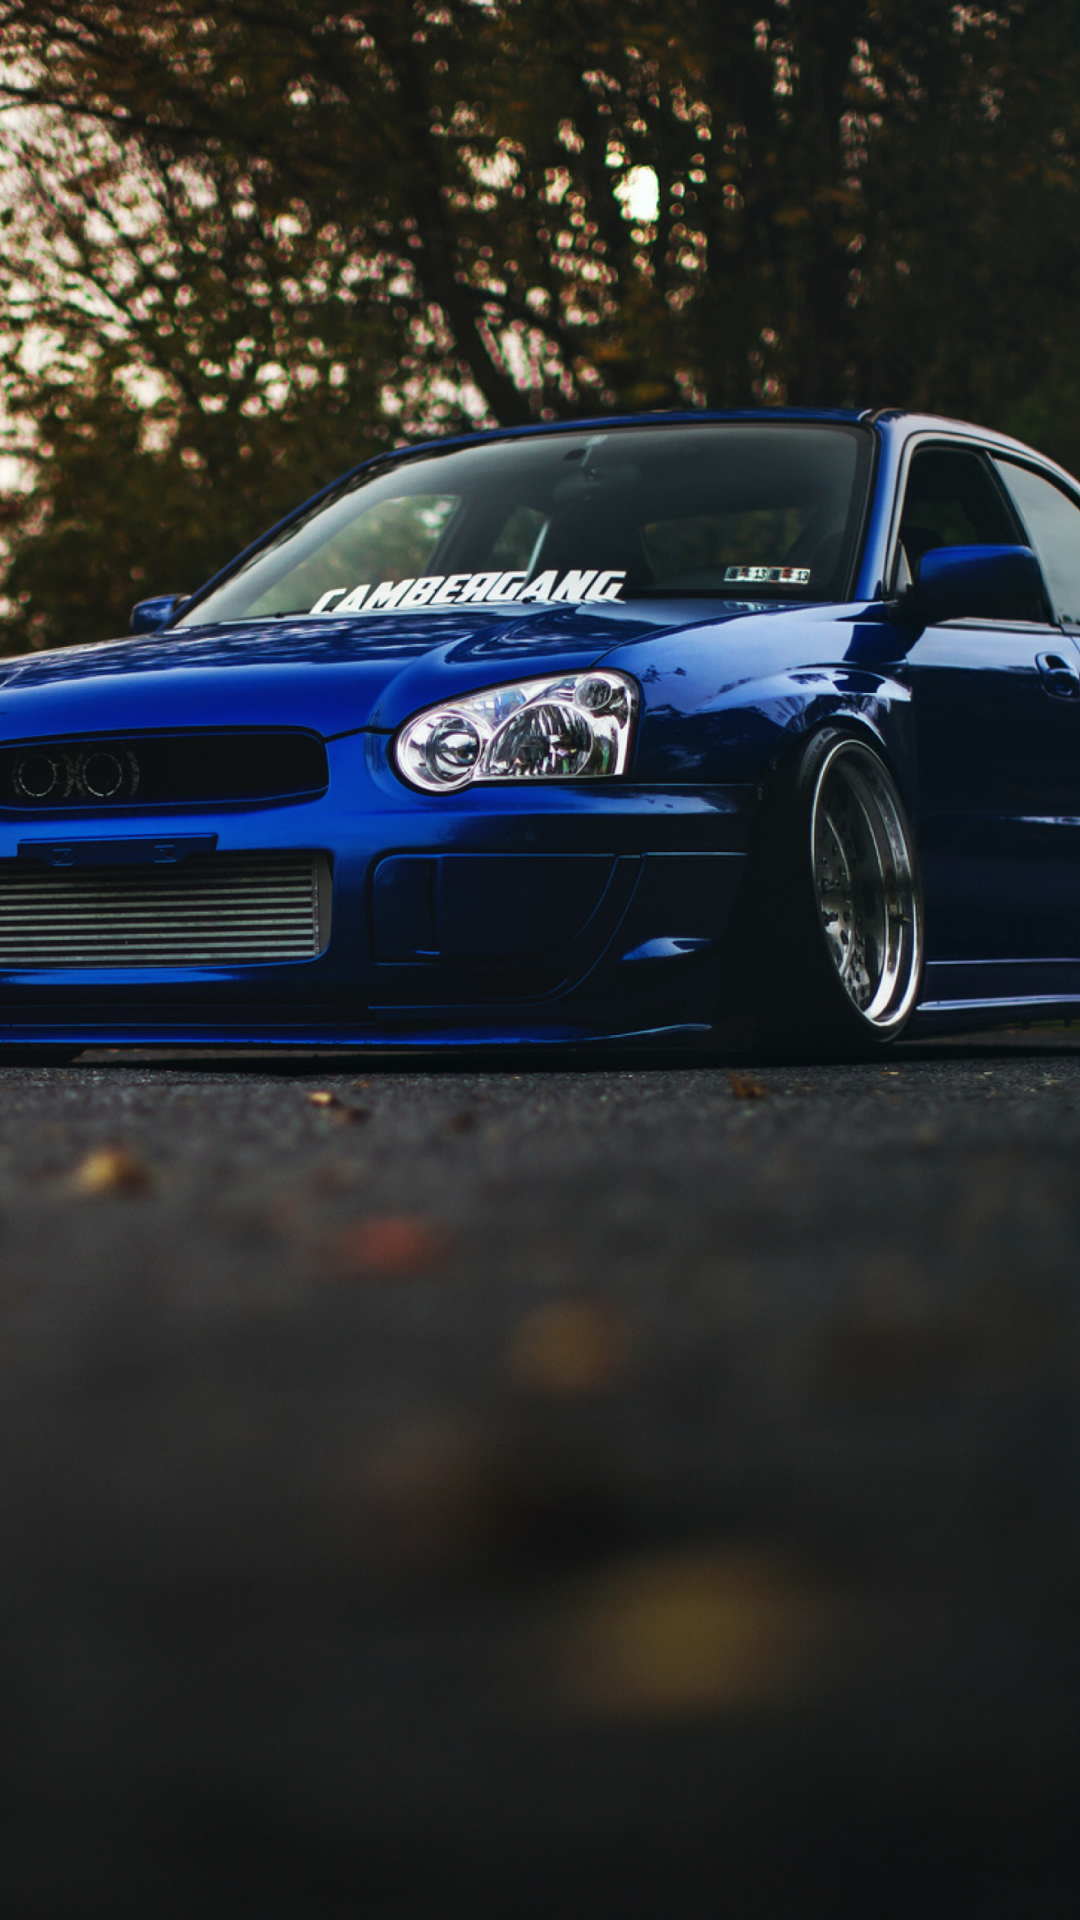 1080x1920 - Wrx Sti iPhone 43